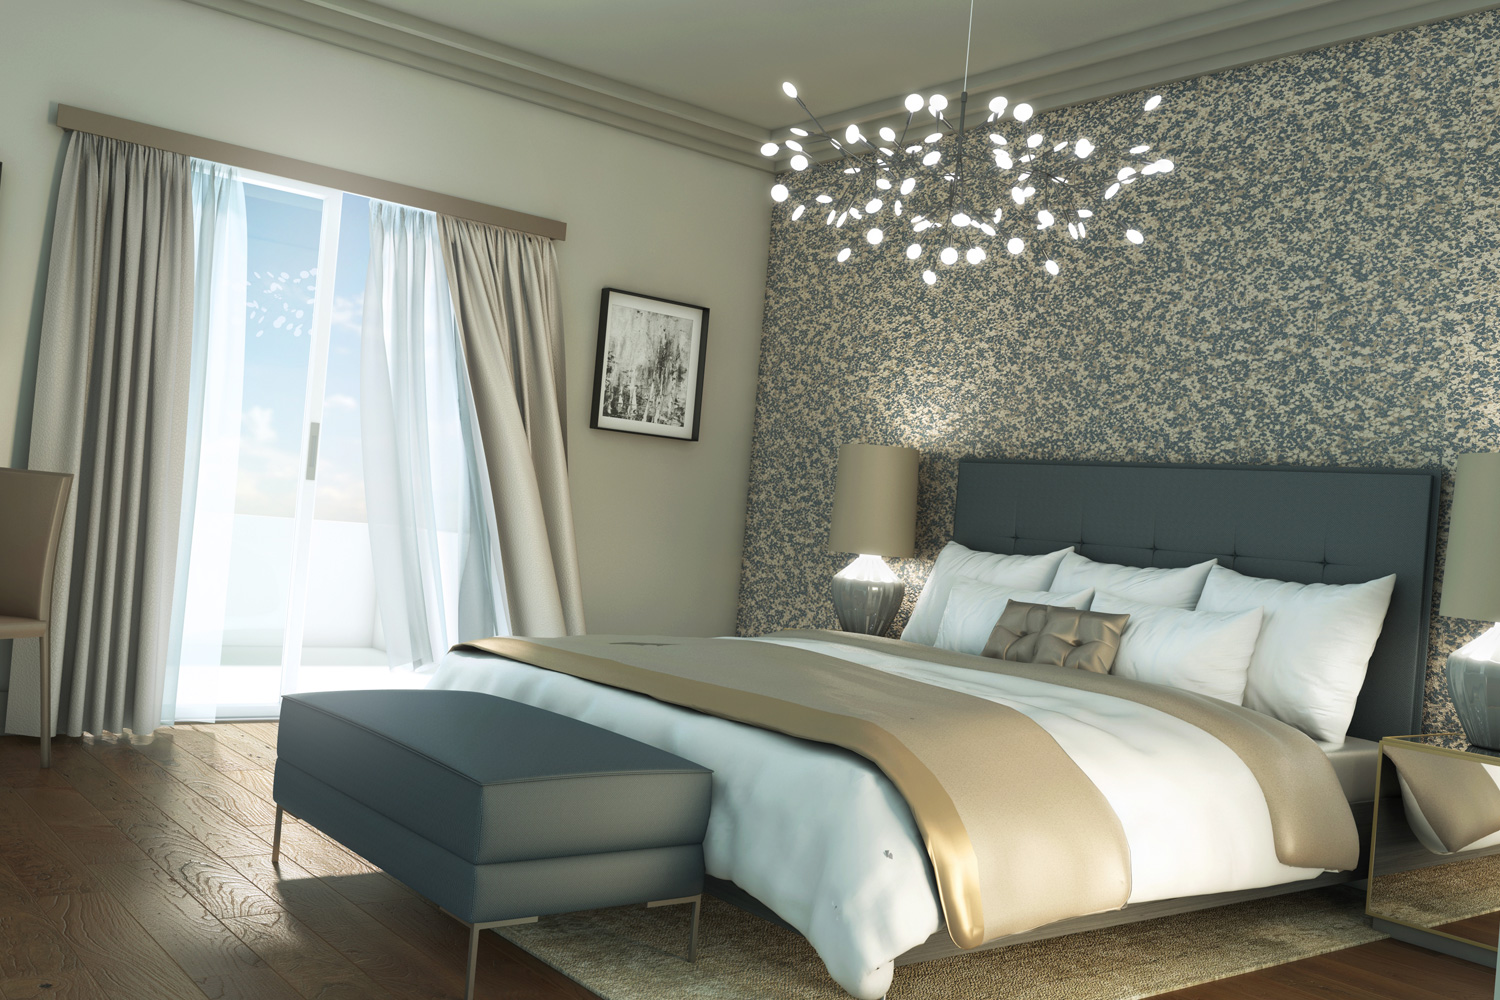 CGI Visualisation Bedroom with natural light